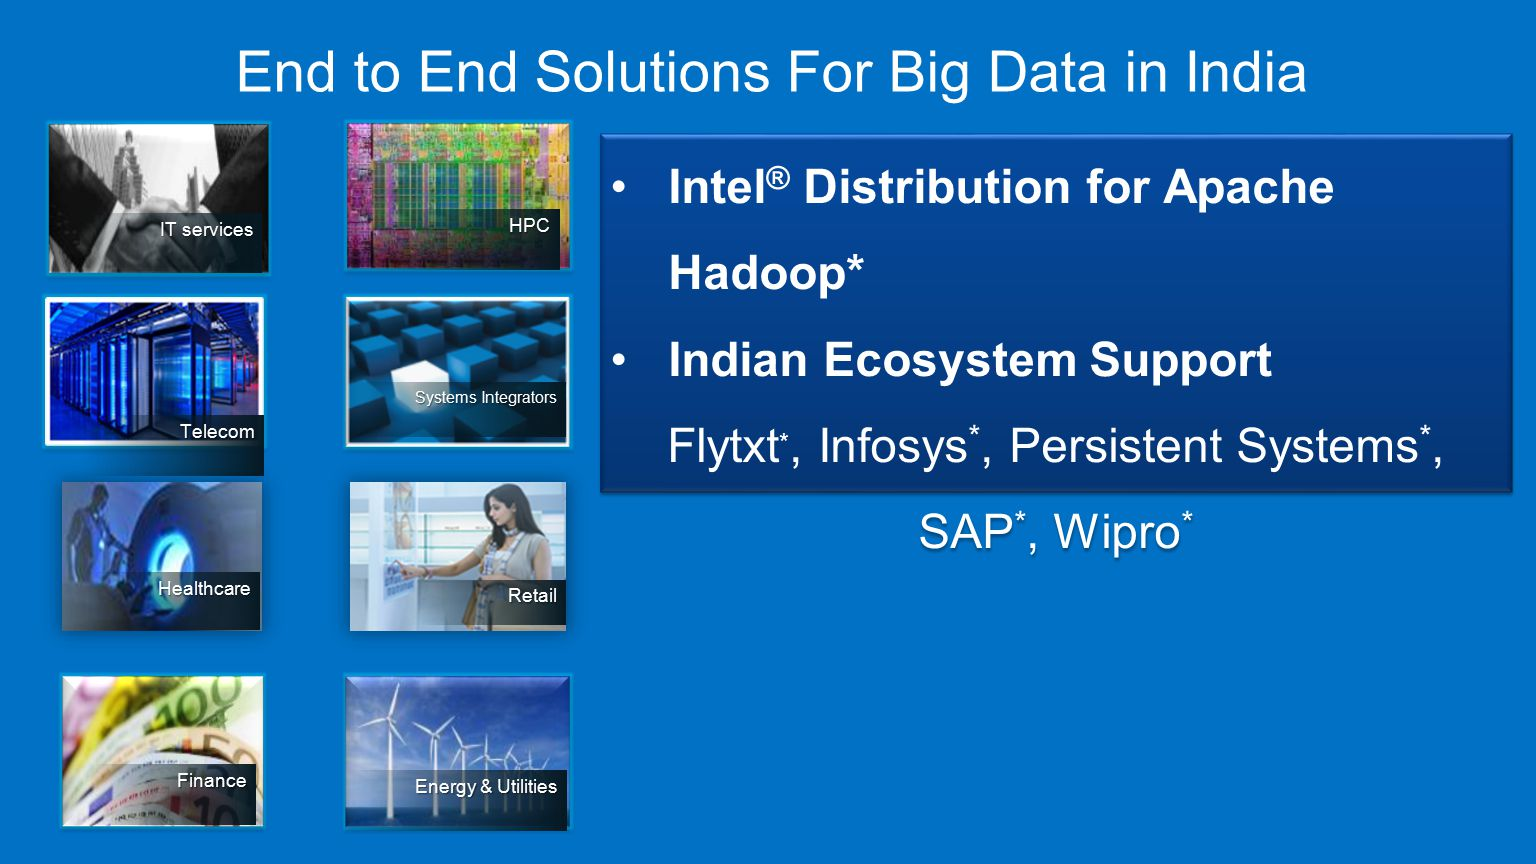 End to End Solutions For Big Data in India IT services HPC Telecom Systems Integrators Healthcare Retail Finance Energy & Utilities Intel ® Distribution for Apache Hadoop* Indian Ecosystem Support Flytxt *, Infosys *, Persistent Systems *, SAP *, Wipro * Intel ® Distribution for Apache Hadoop* Indian Ecosystem Support Flytxt *, Infosys *, Persistent Systems *, SAP *, Wipro *